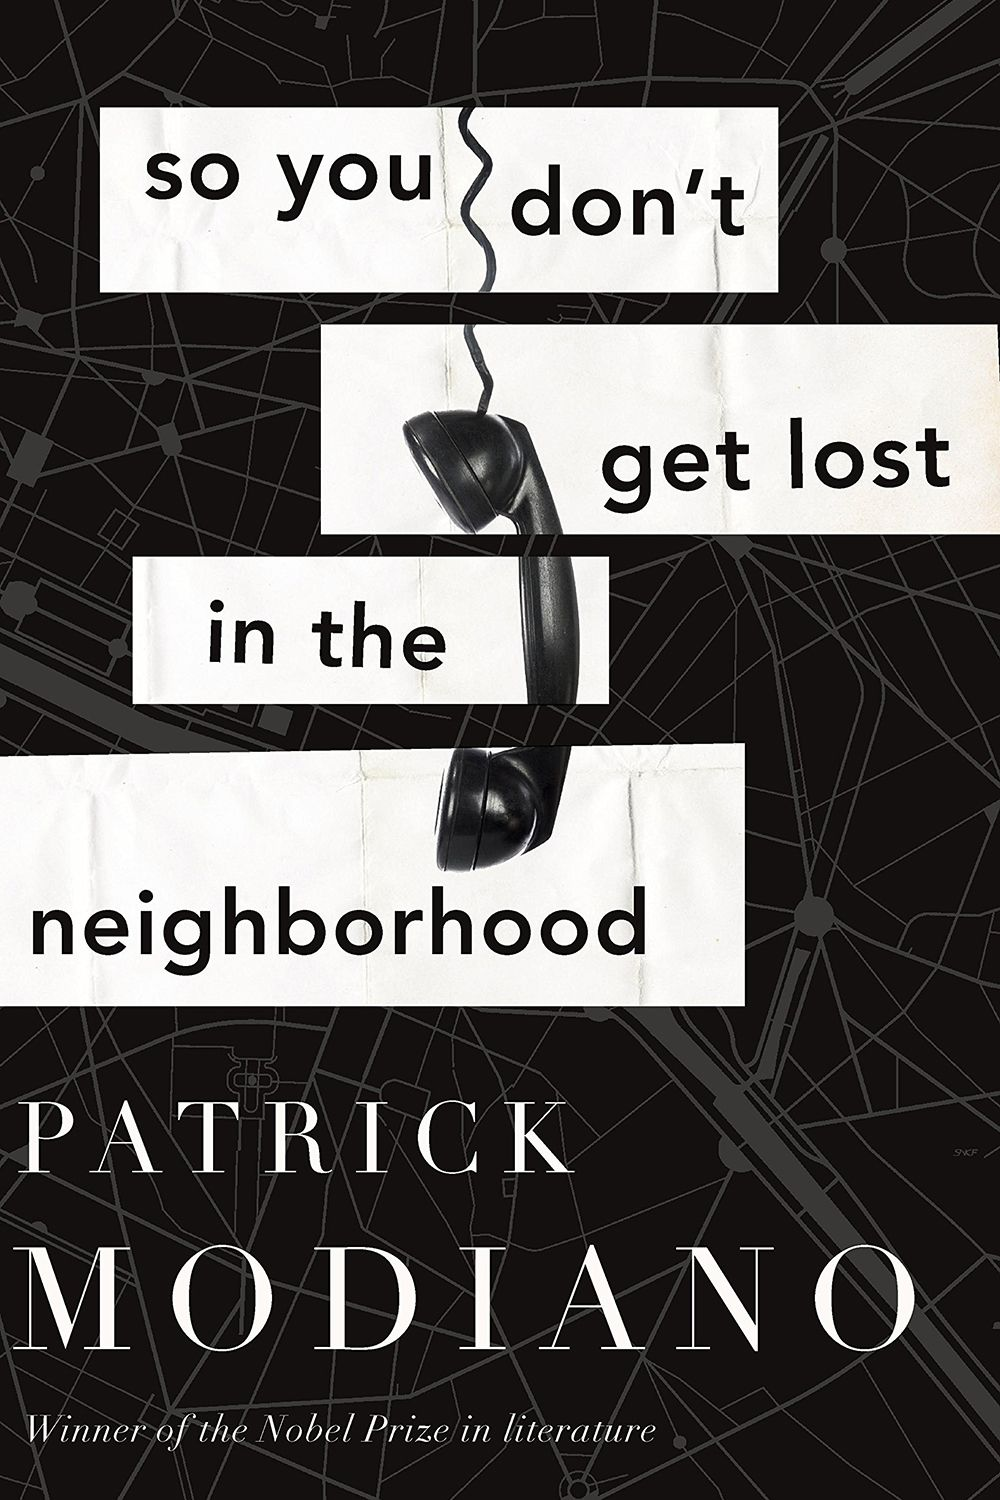 <p>After a mysterious phone call, the reclusive Jean Daragane finds himself drawn into a dangerous investigation of a decades-old murder in Paris by a hauntingly beautiful woman. So You Don't Get Lost In The Neighborhood is the anticipated psychological thriller by Patrick Modiano, winner of the 2014 Nobel Prize in Literature.</p>